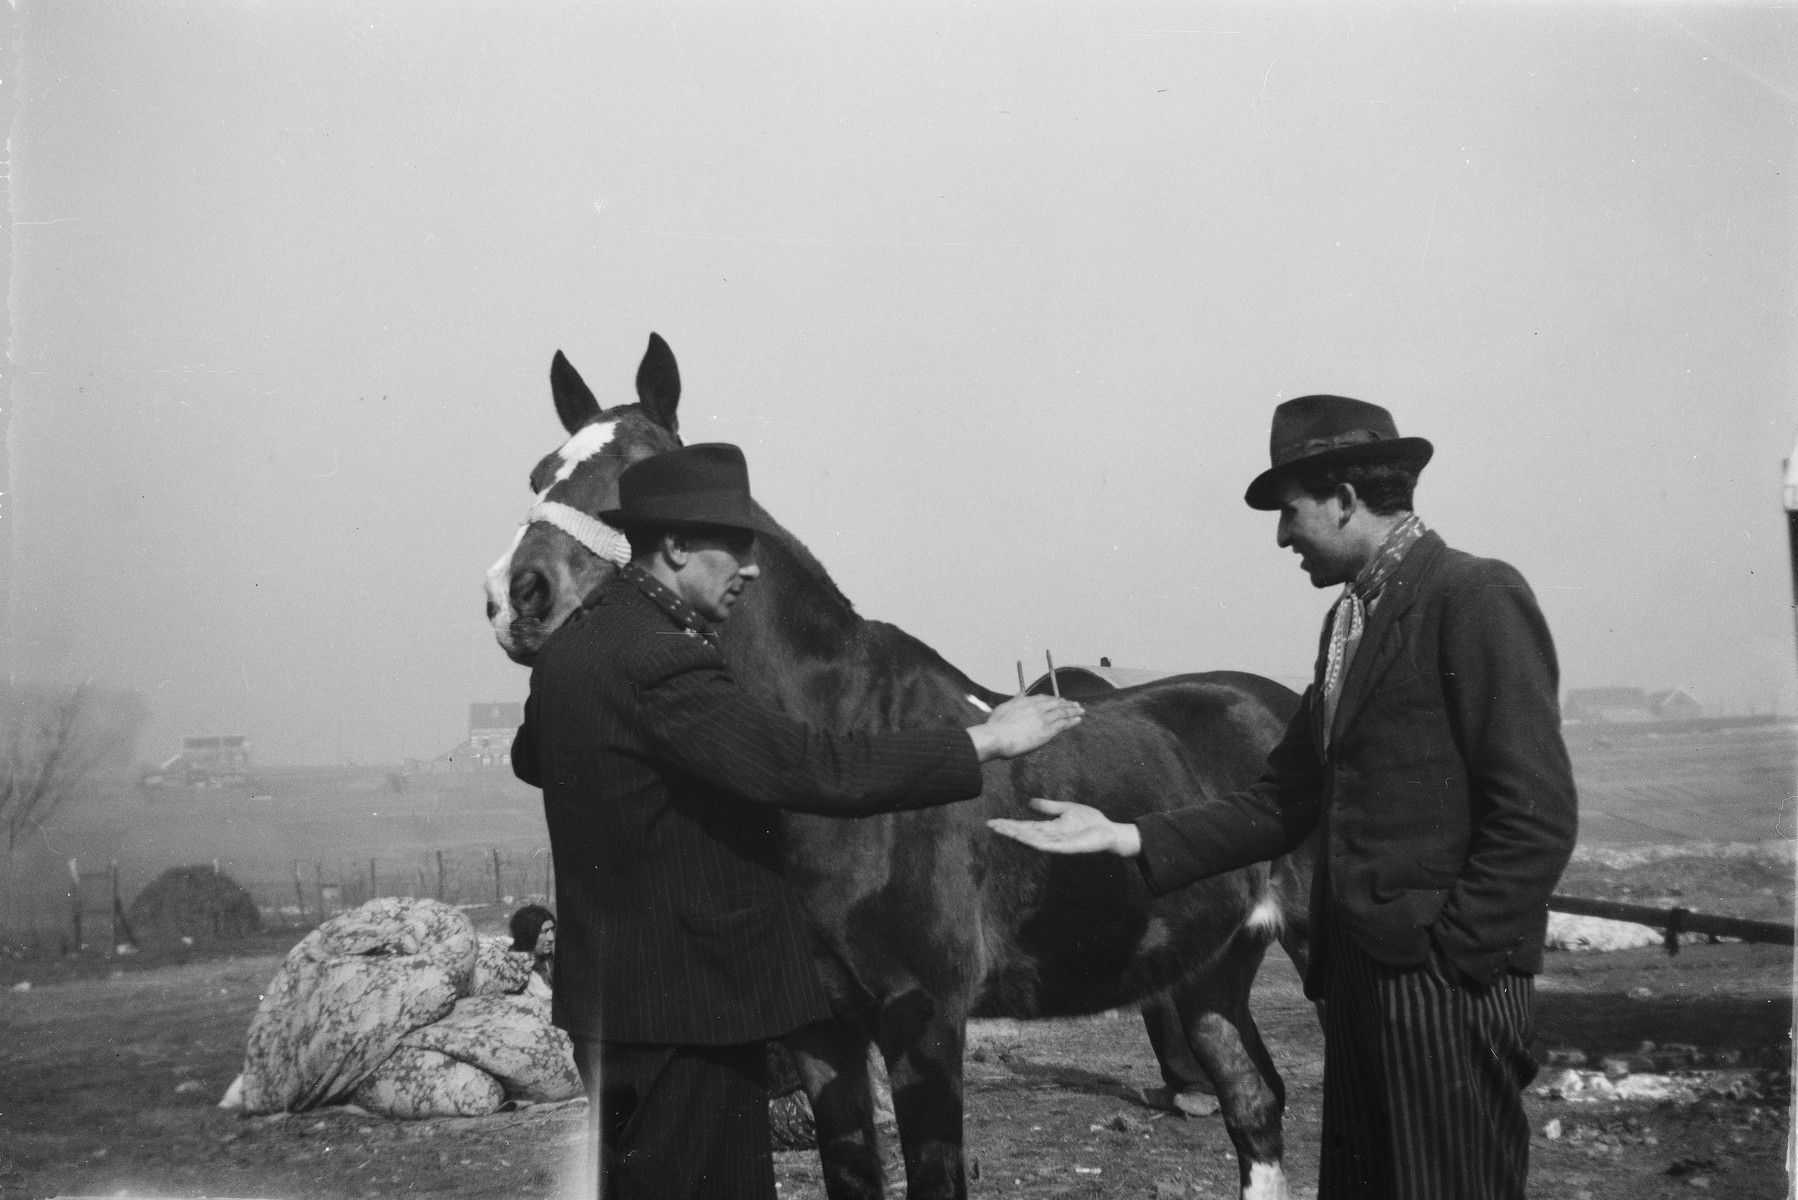 Two Romani (Gypsy) men make a deal on a horse.